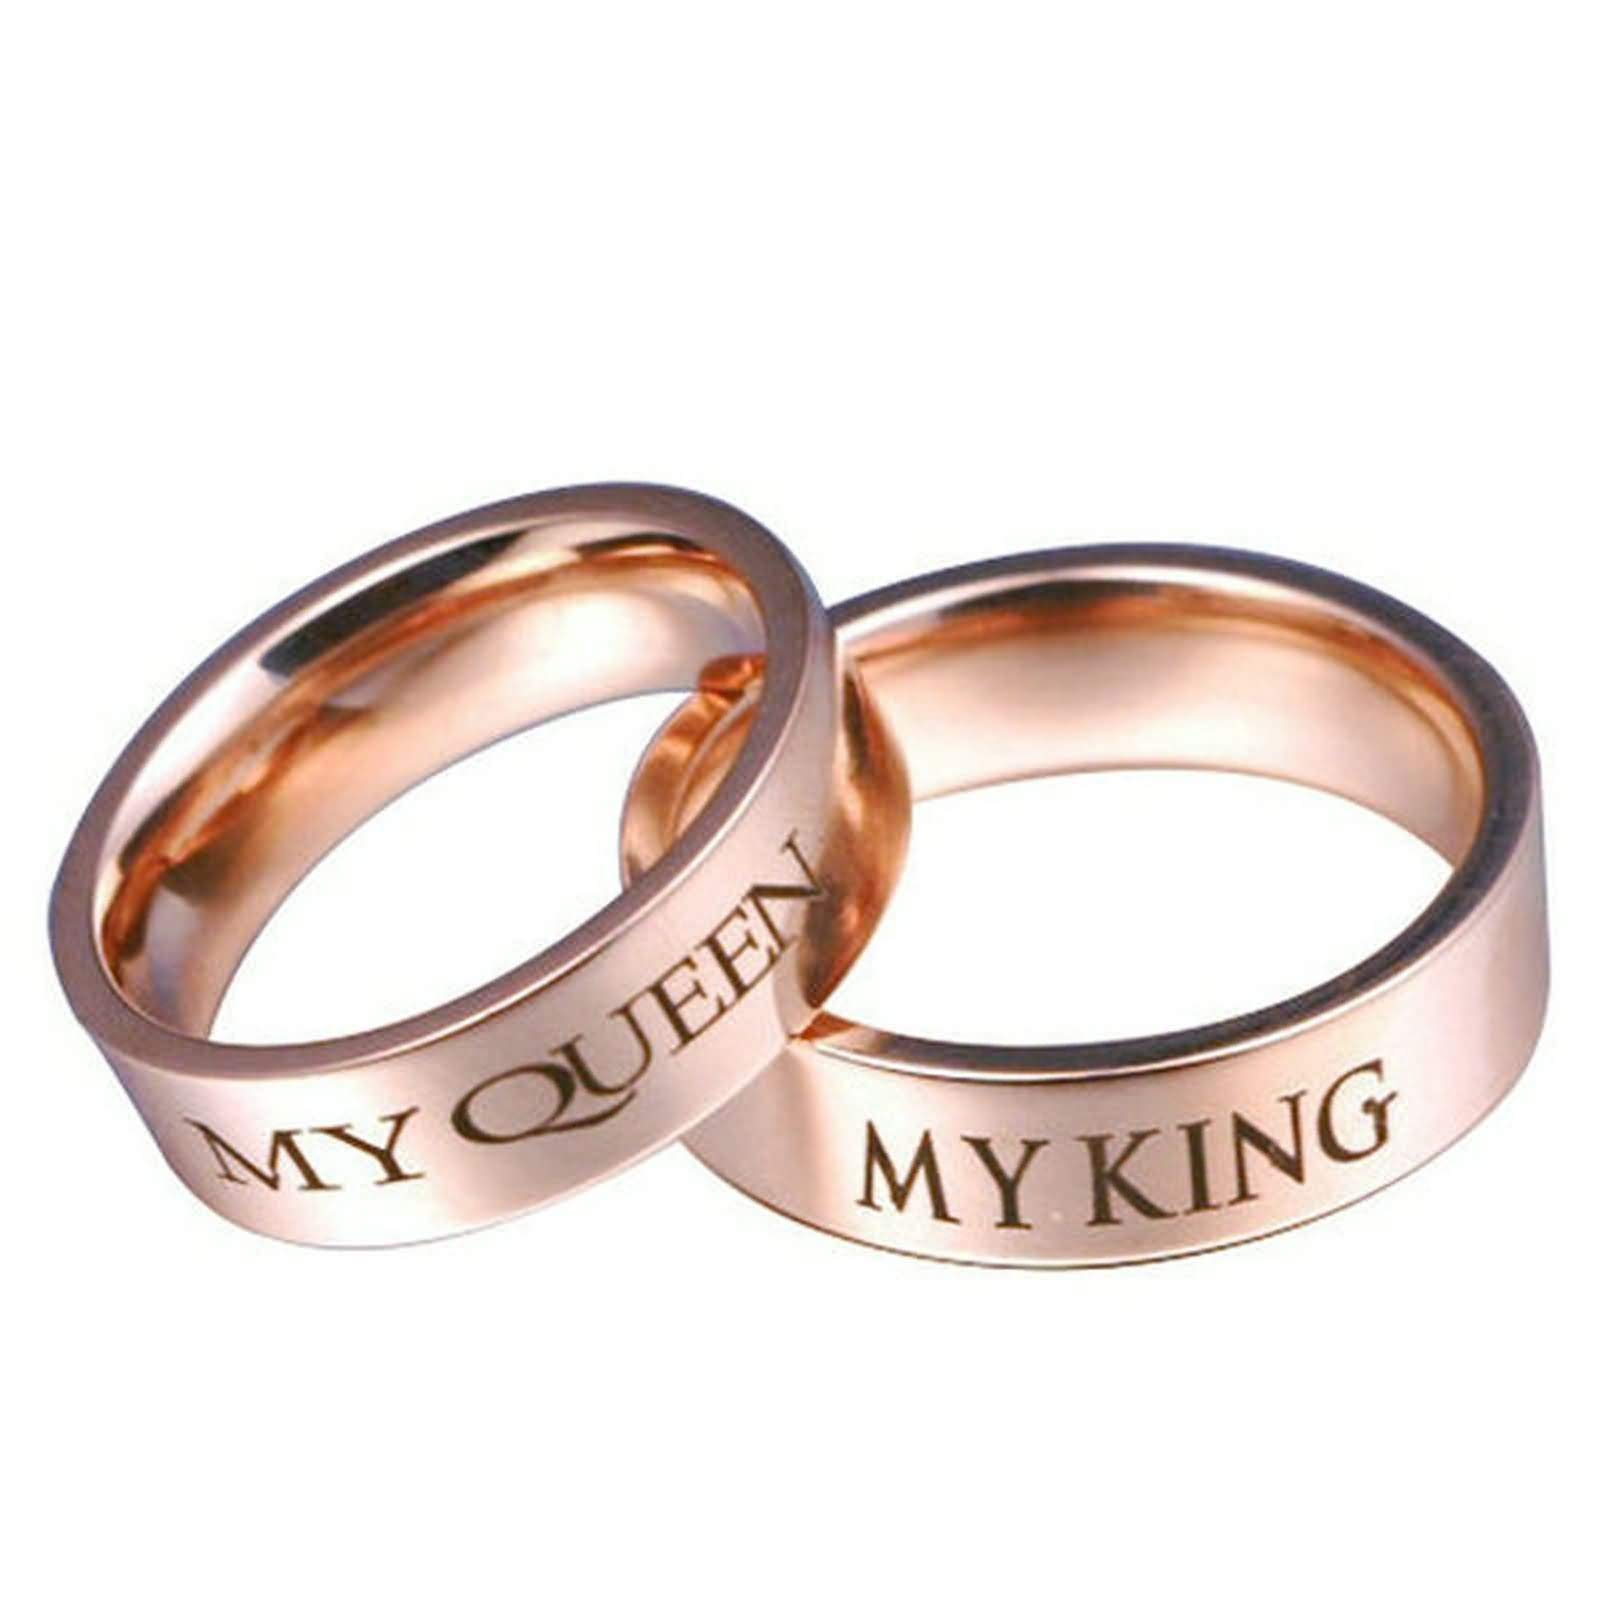 Beydodo His and Hers Wedding Ring Sets Rose Gold Stainless Steel Ring Set Engraved My Queen and My King Size J 1/2-Z 1/2